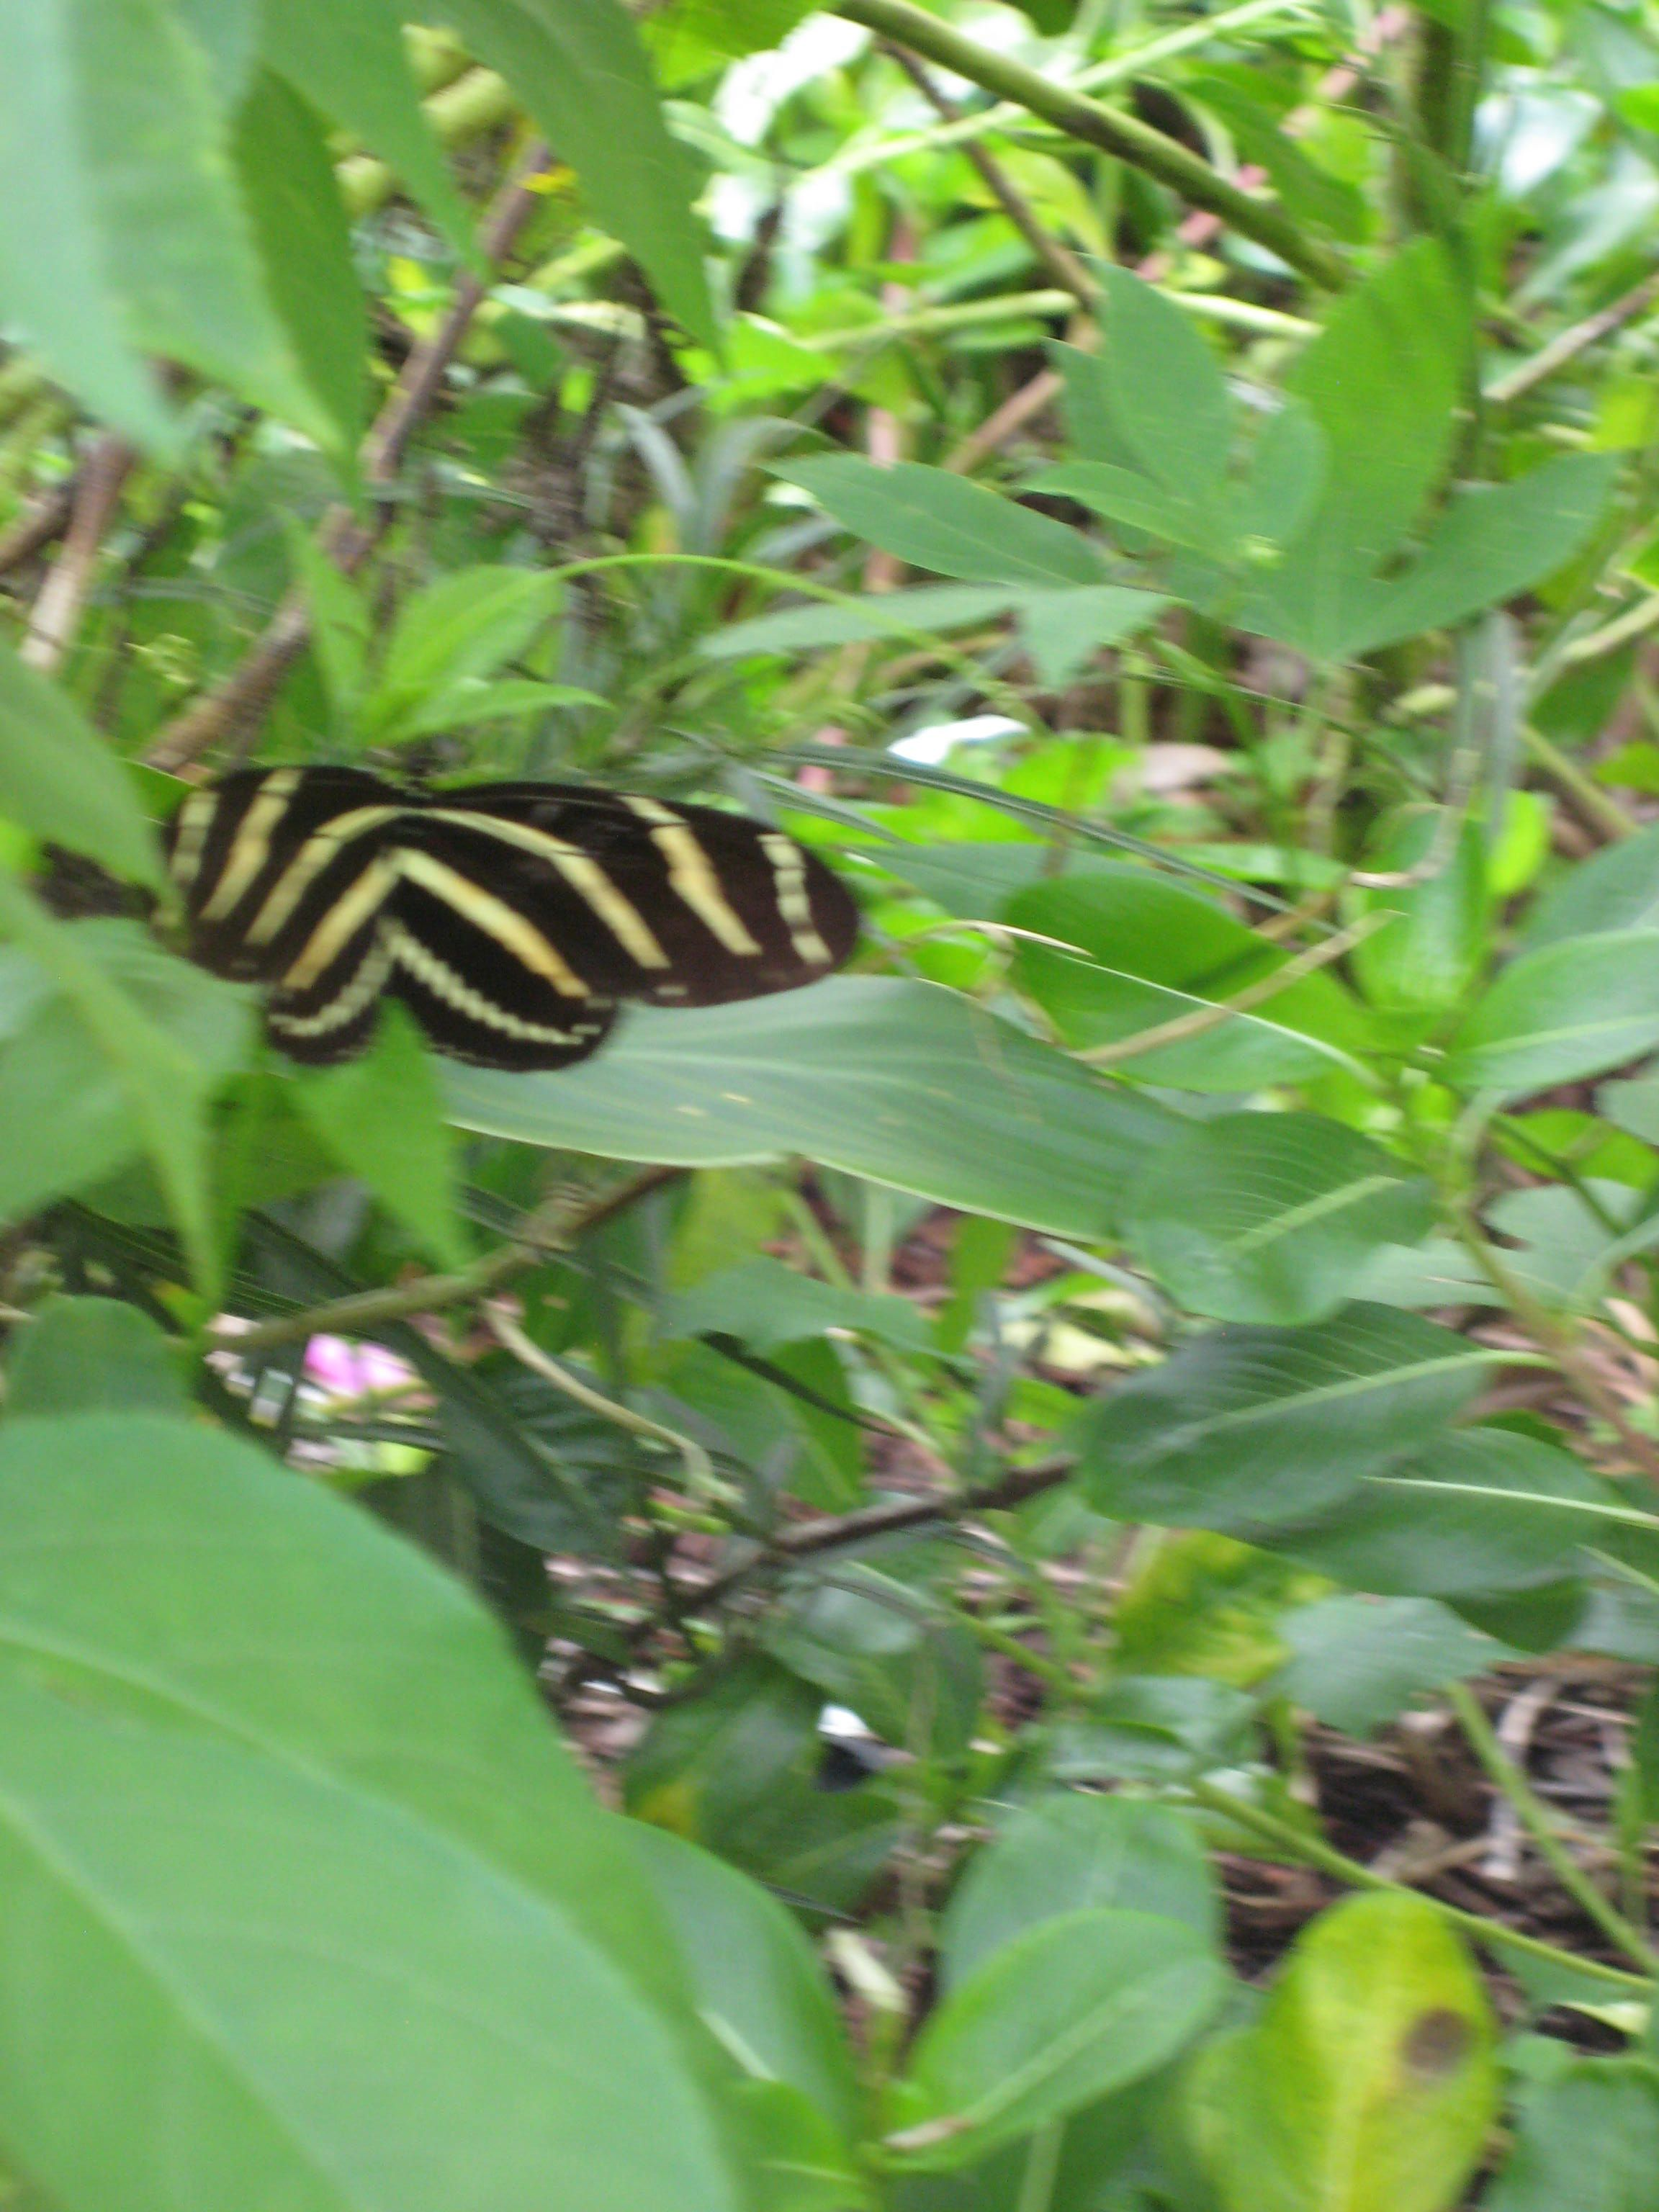 A Zebra Butterfly Flying Through The Passion Flower Vine Flowering Vines Plant Leaves Passion Flower